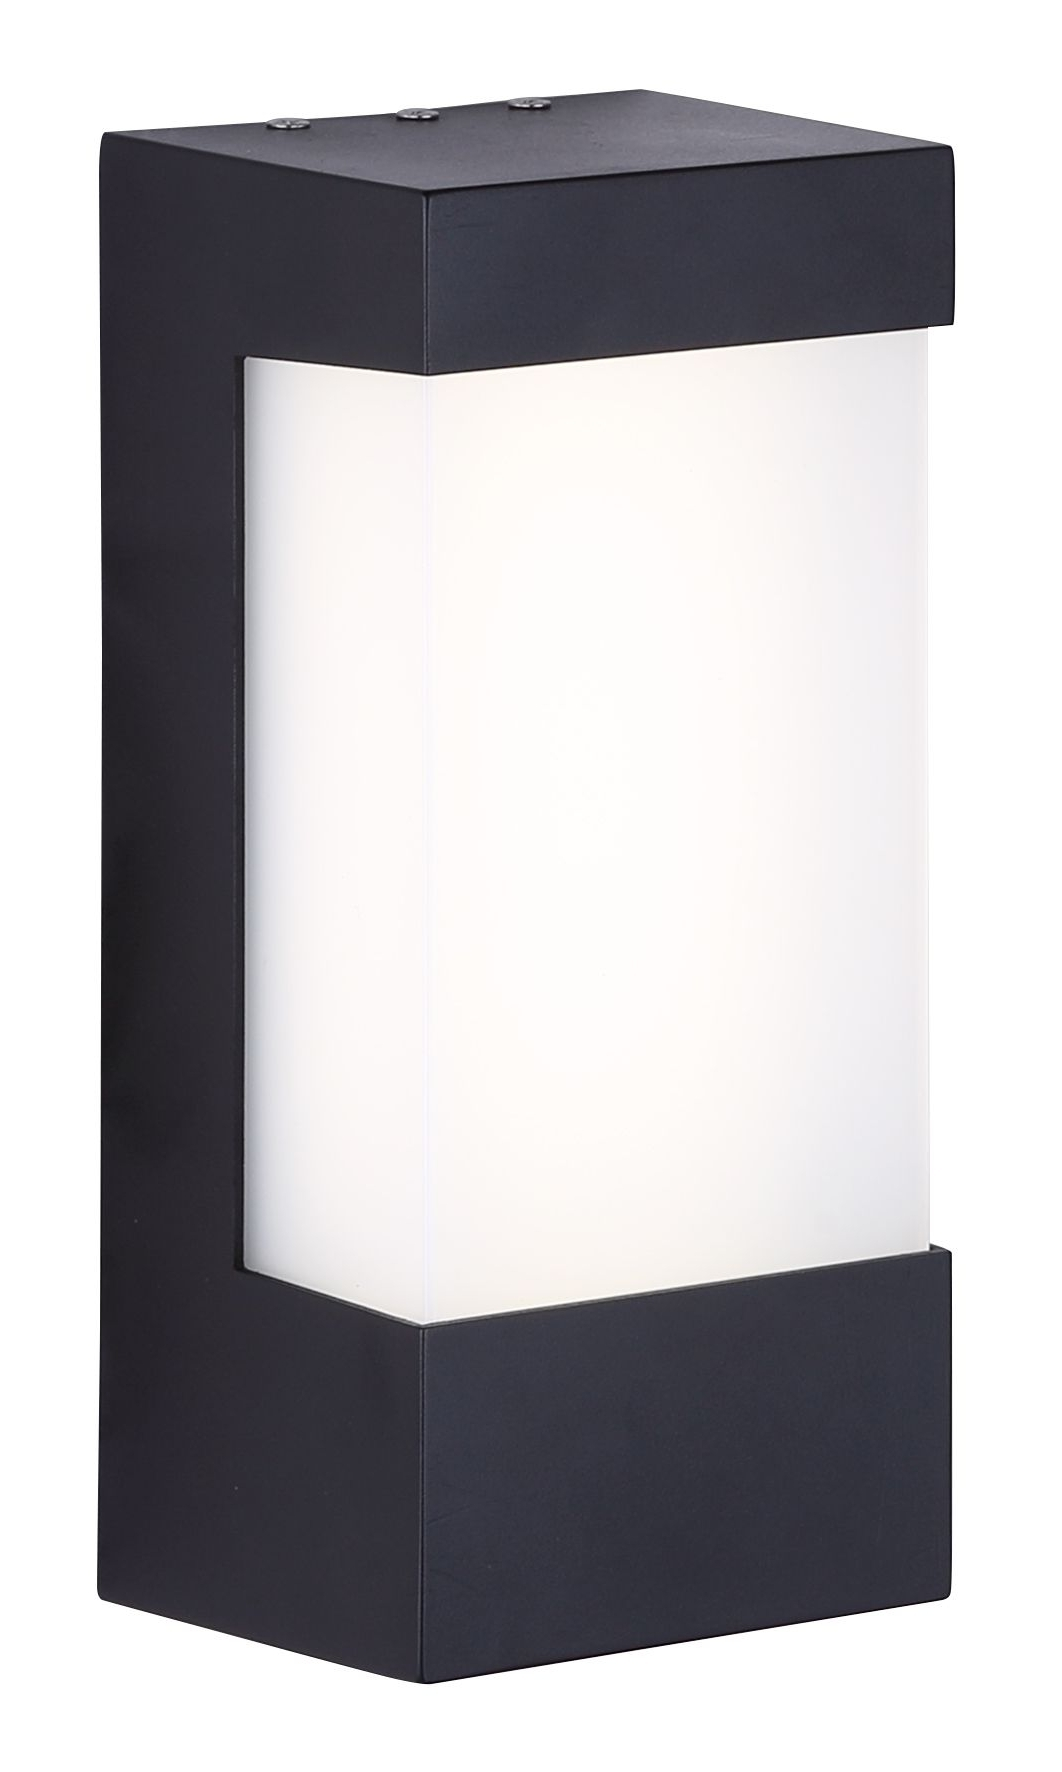 Led Outdoor Plastic Outdoor Wall Light Brwl Sq6w N Bk (View 4 of 20)